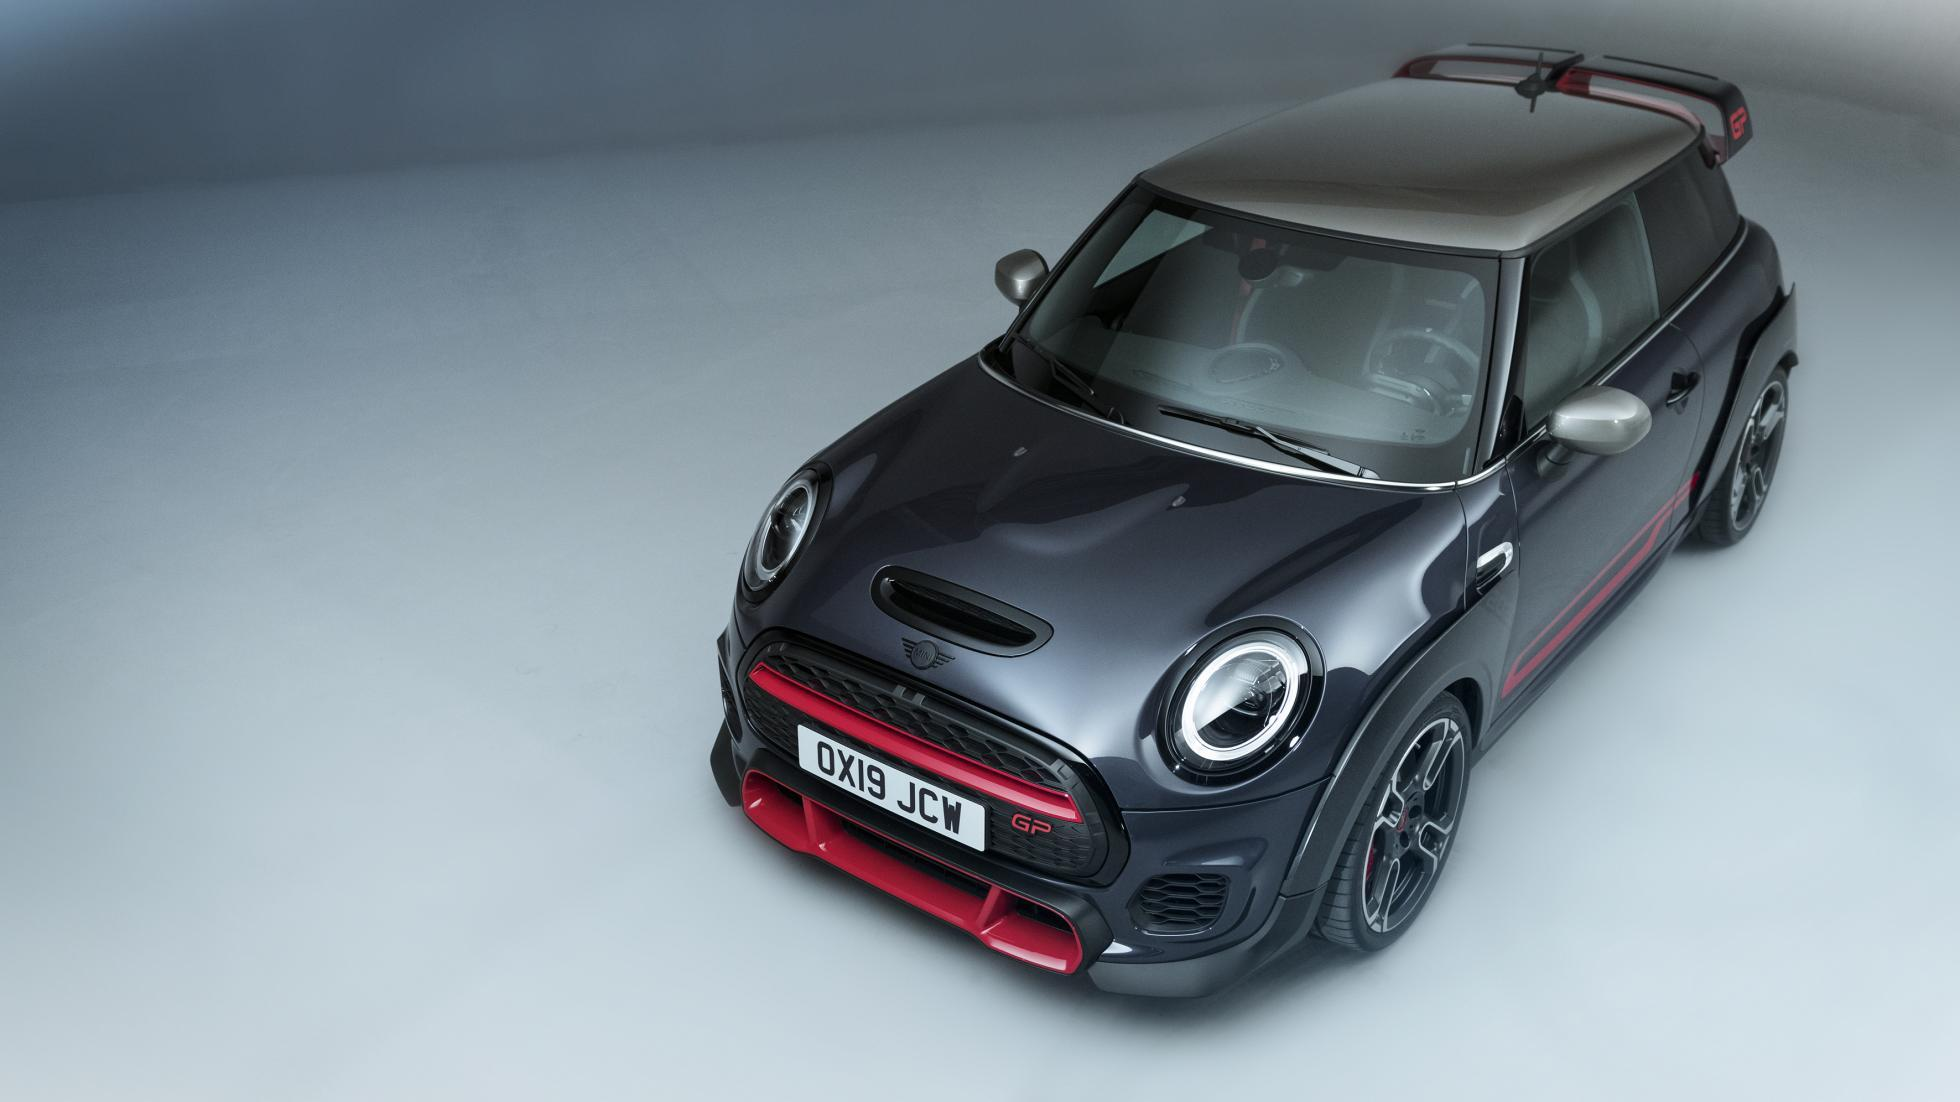 The new Mini GP looks as wild as we hoped it would